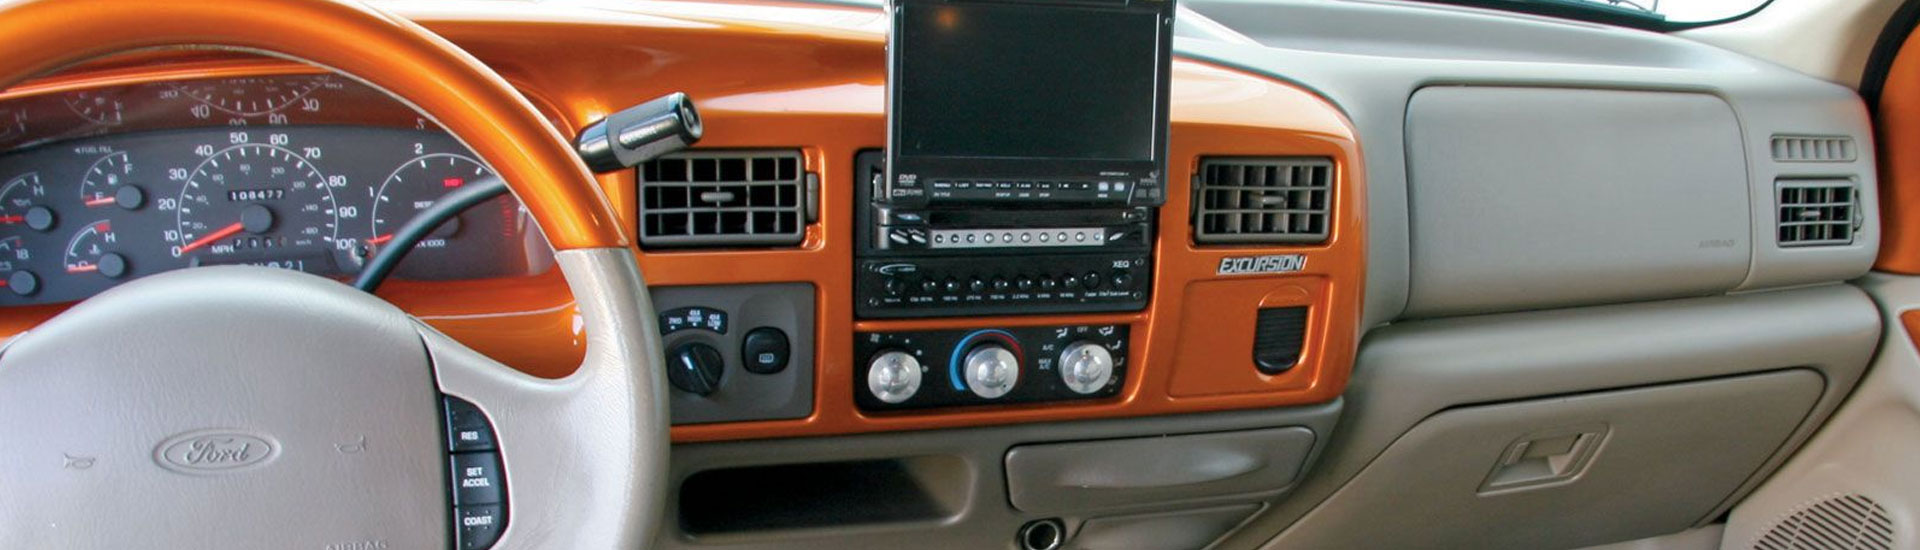 Ford Excursion Dash Kits on Dodge Ram Dash Installation